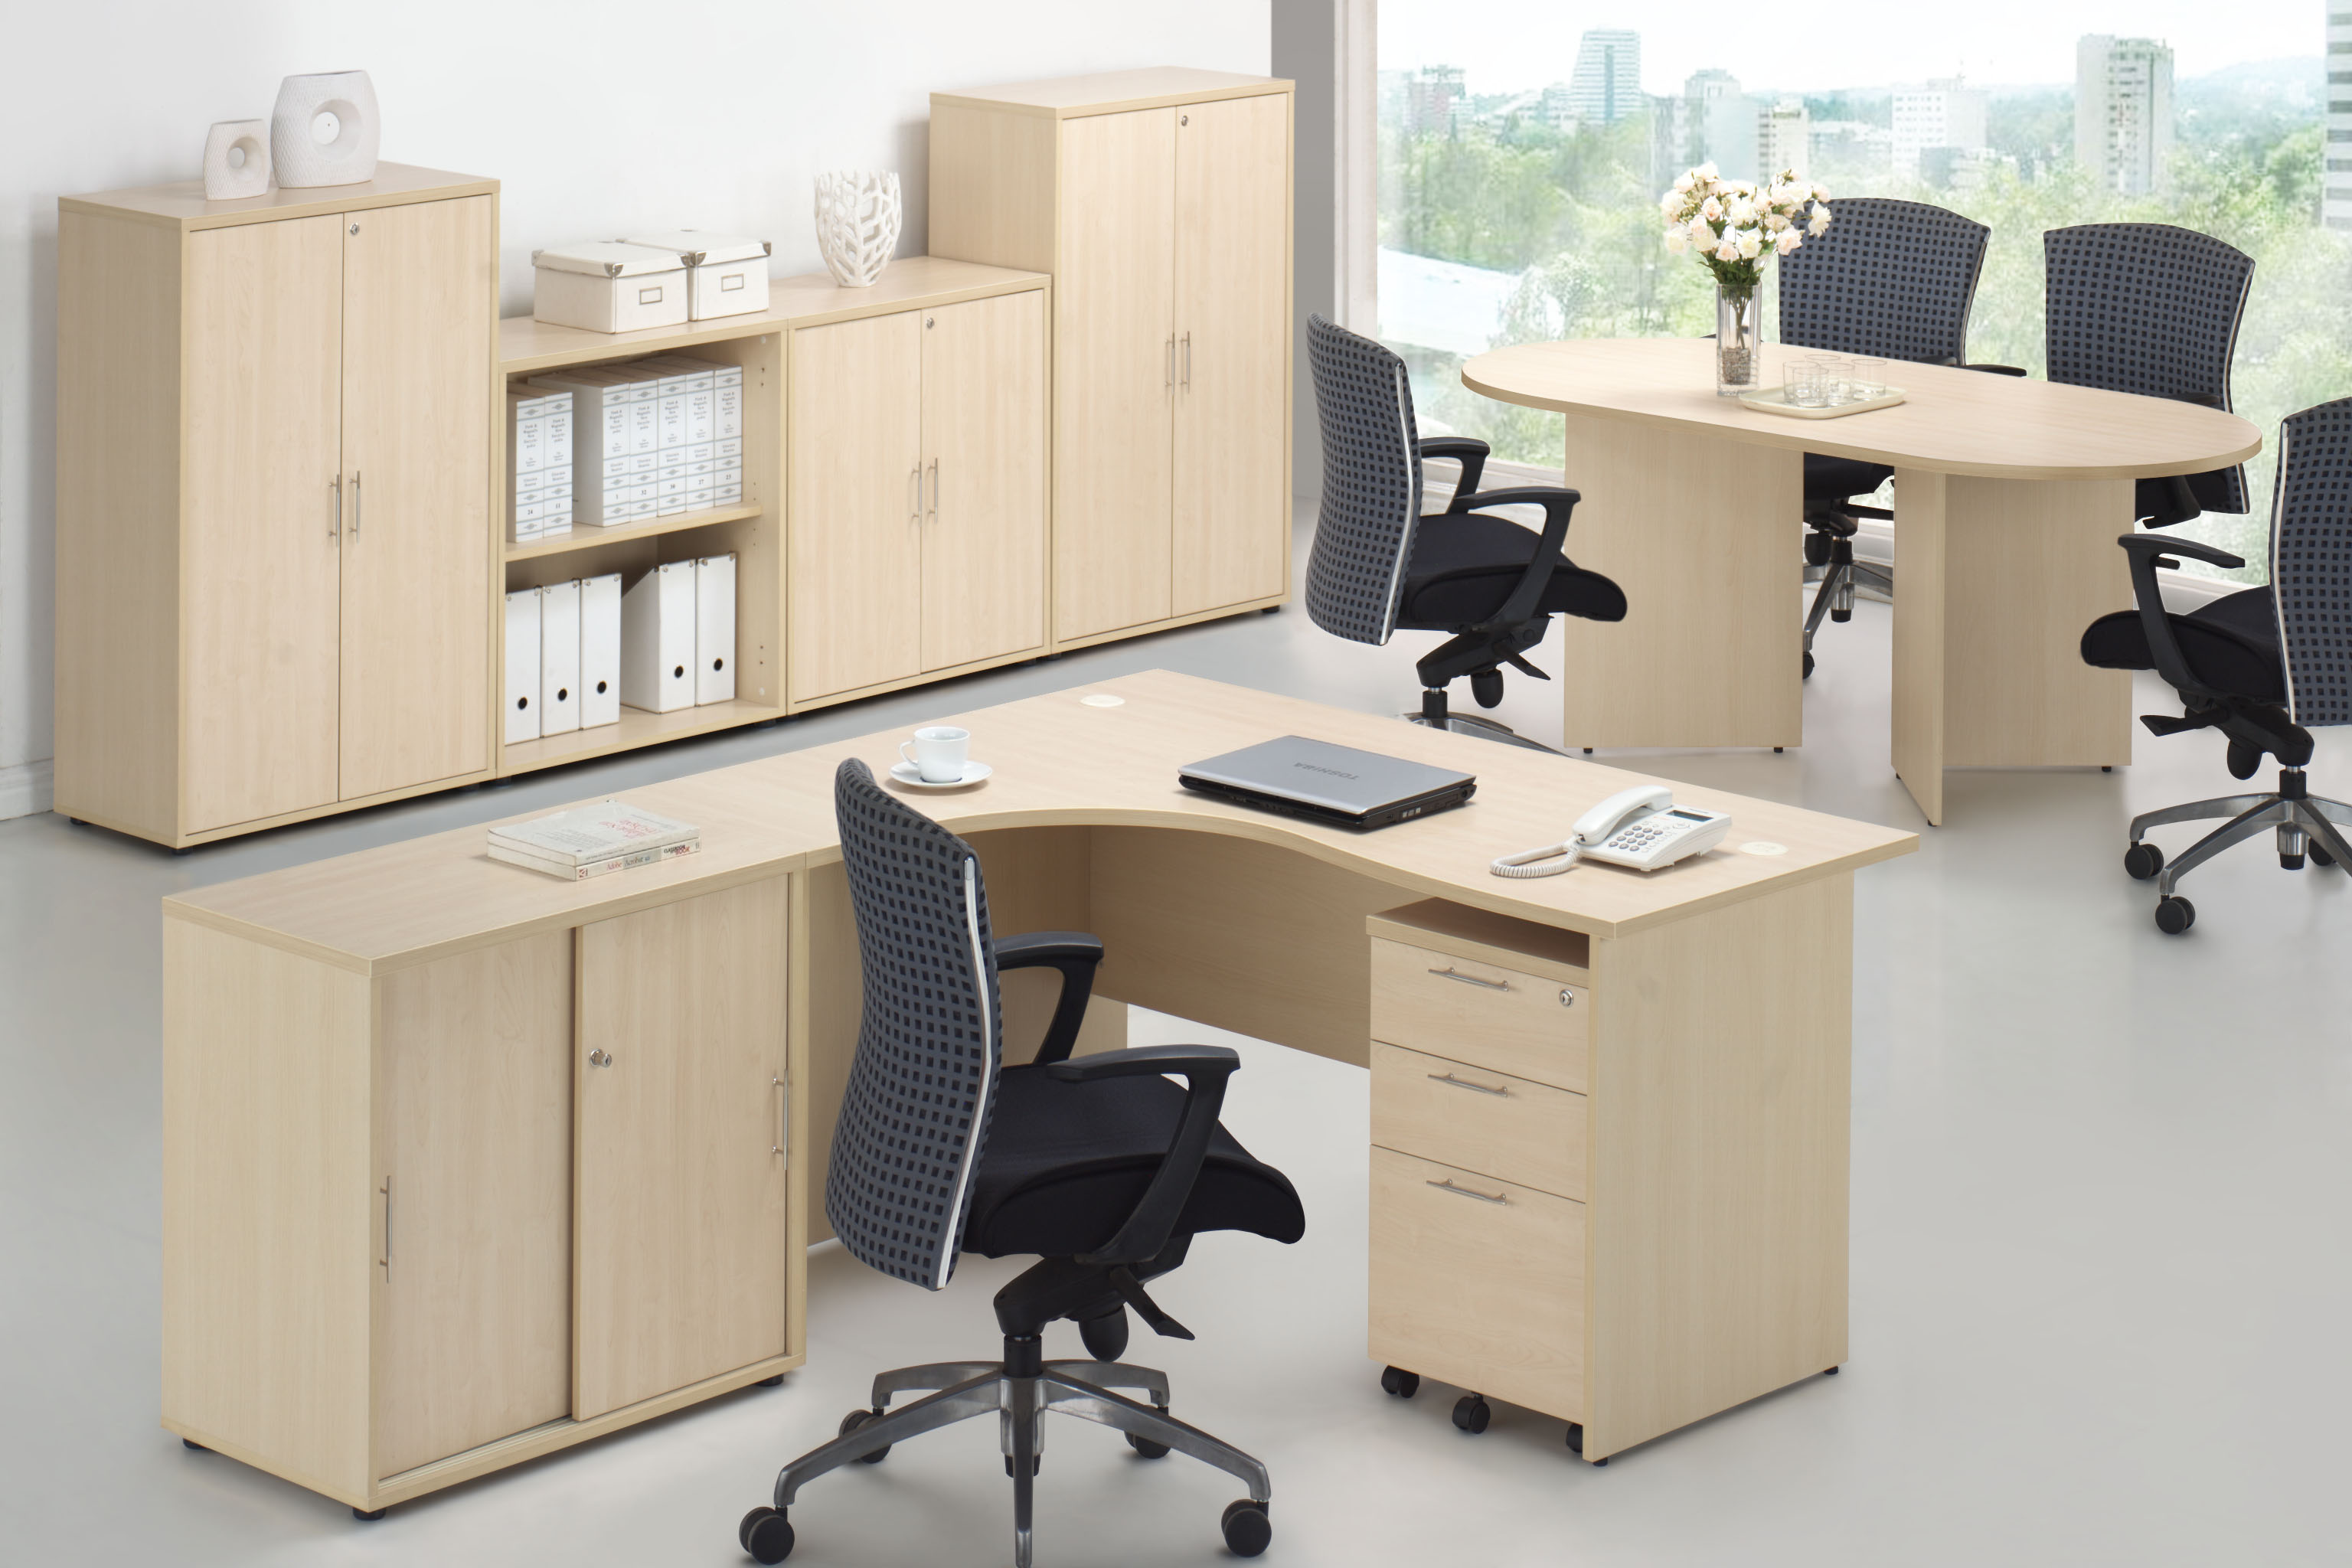 Maple wood color office furniture